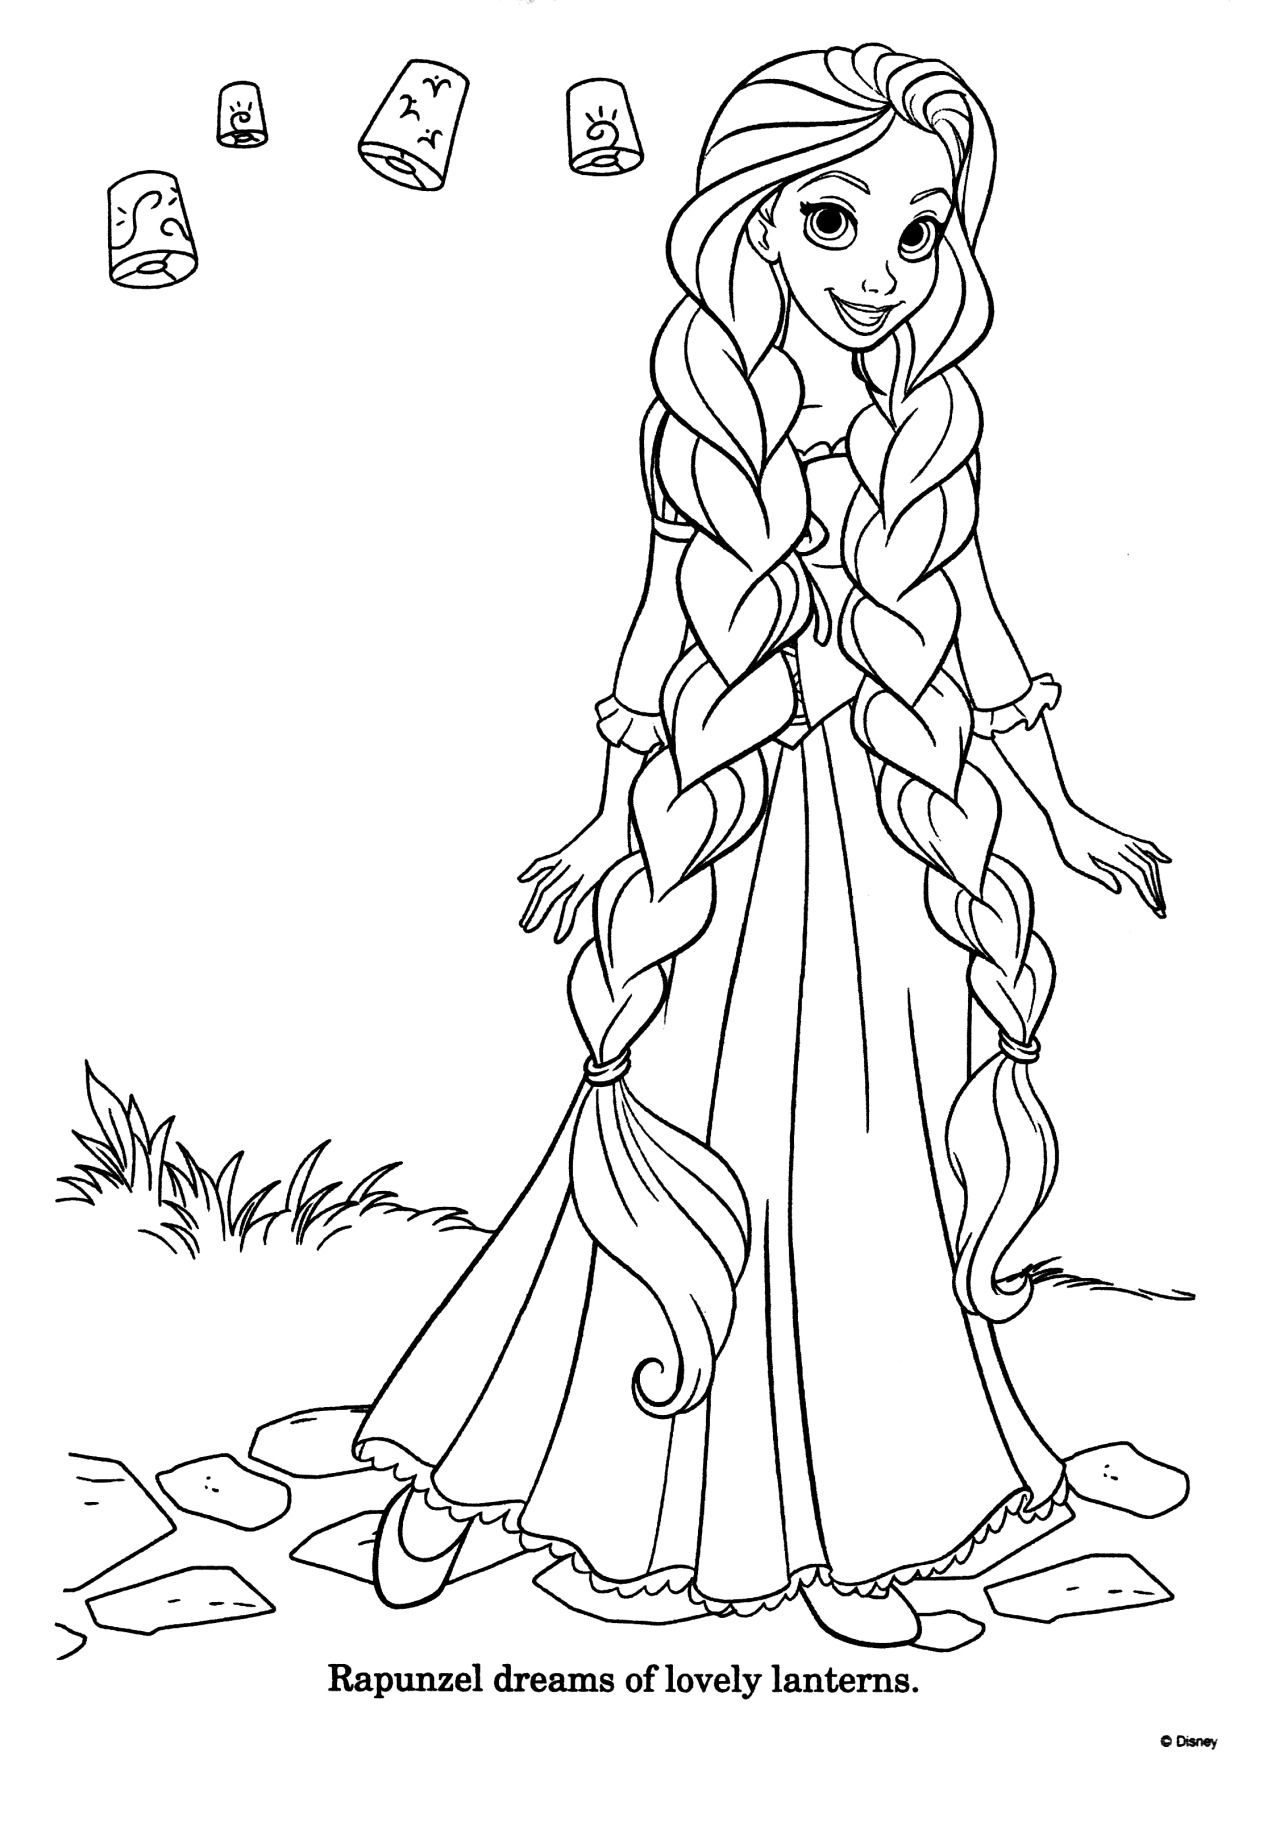 Tons Of Mistakes To Not Regret Virtual Spell My New Princess Drawing Which Is Disney Coloring Pages Tangled Coloring Pages Coloring Pages [ 1830 x 1280 Pixel ]